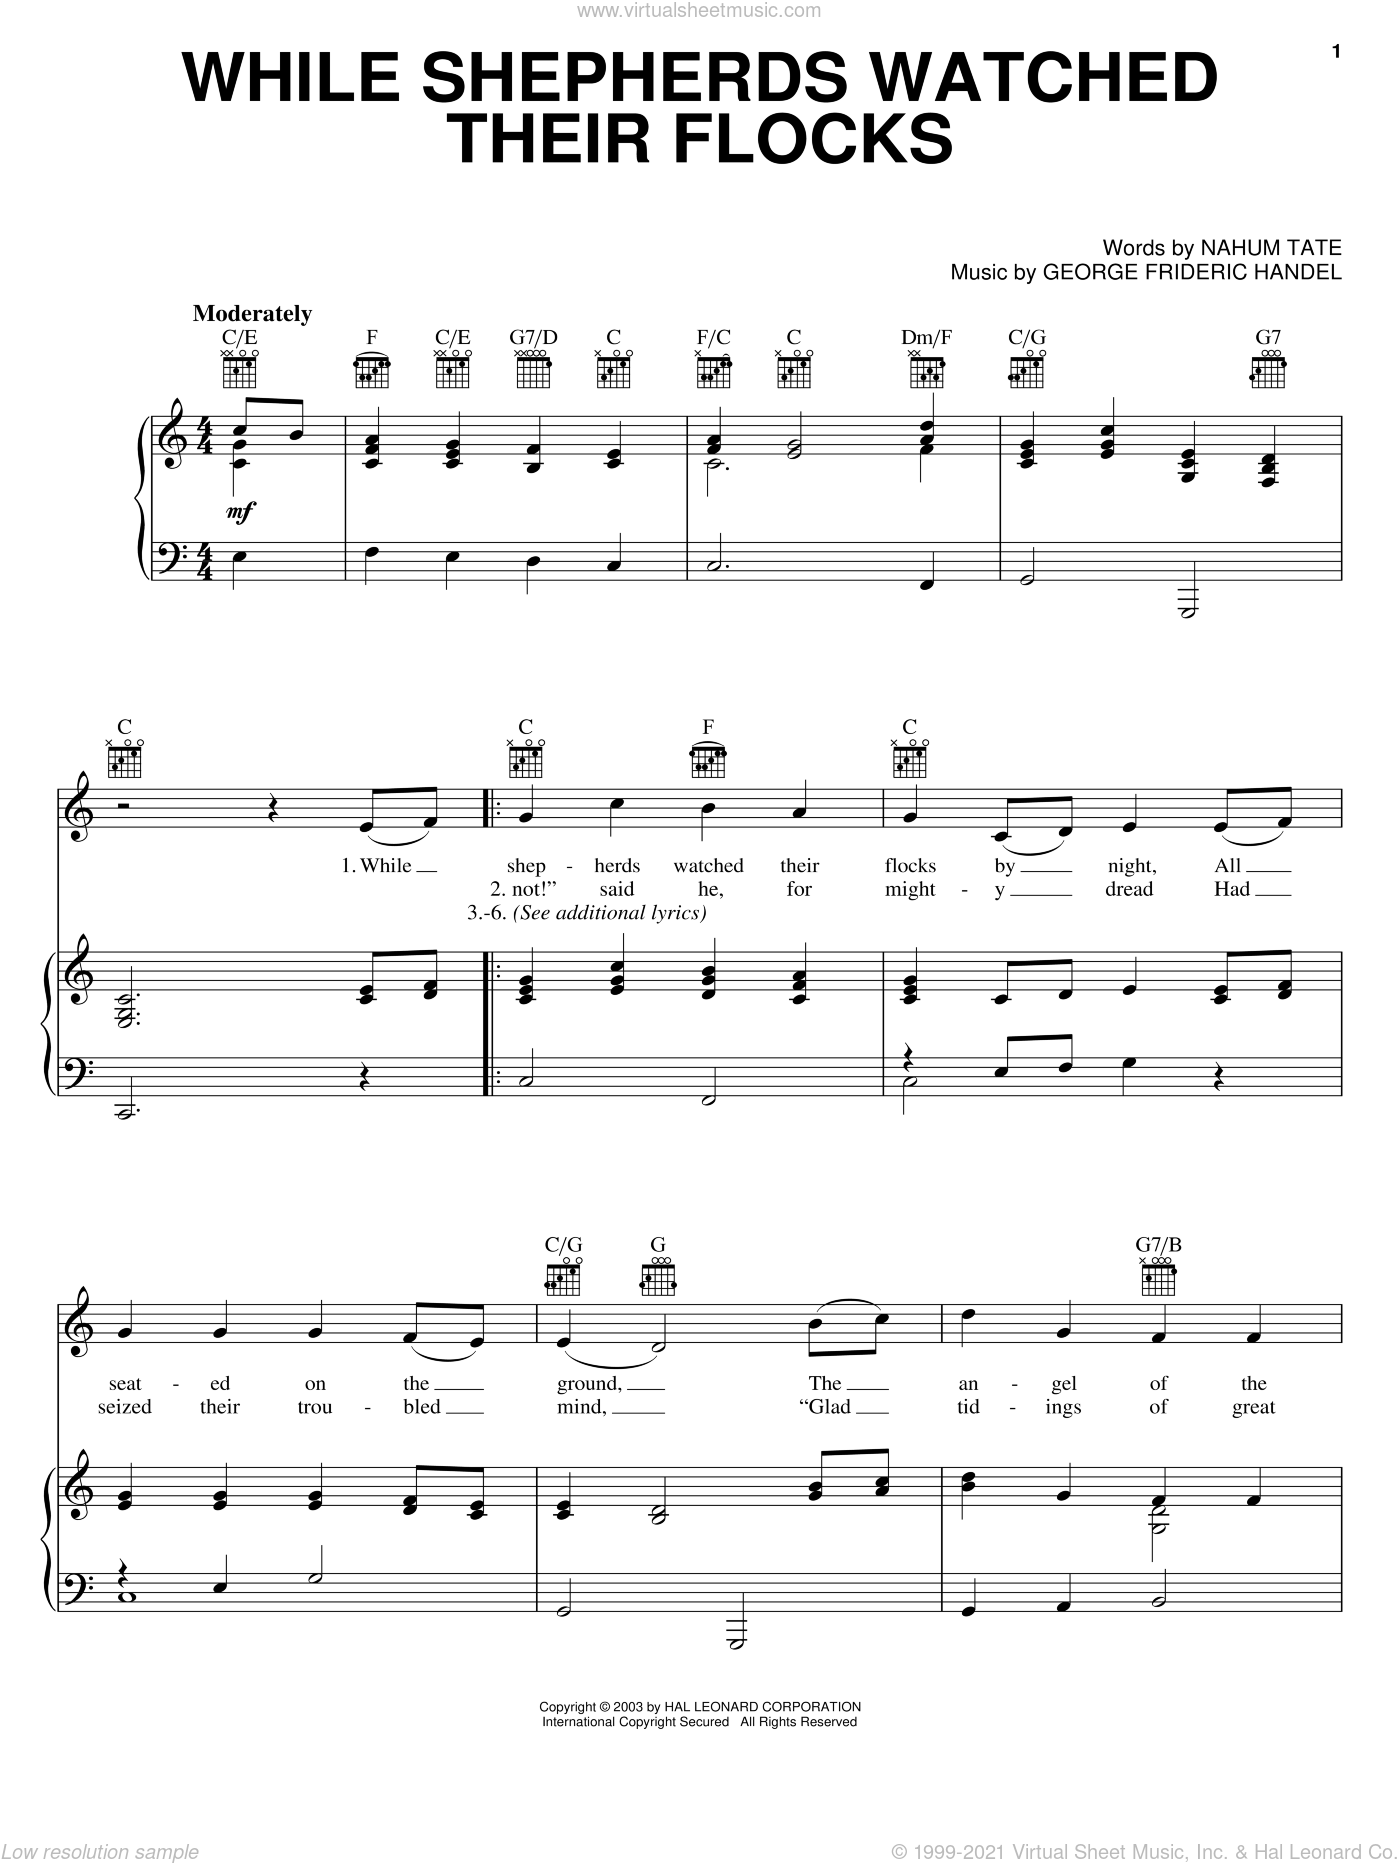 While Shepherds Watched Their Flocks sheet music for voice, piano or guitar by Nahum Tate, Miscellaneous and George Frideric Handel, intermediate skill level